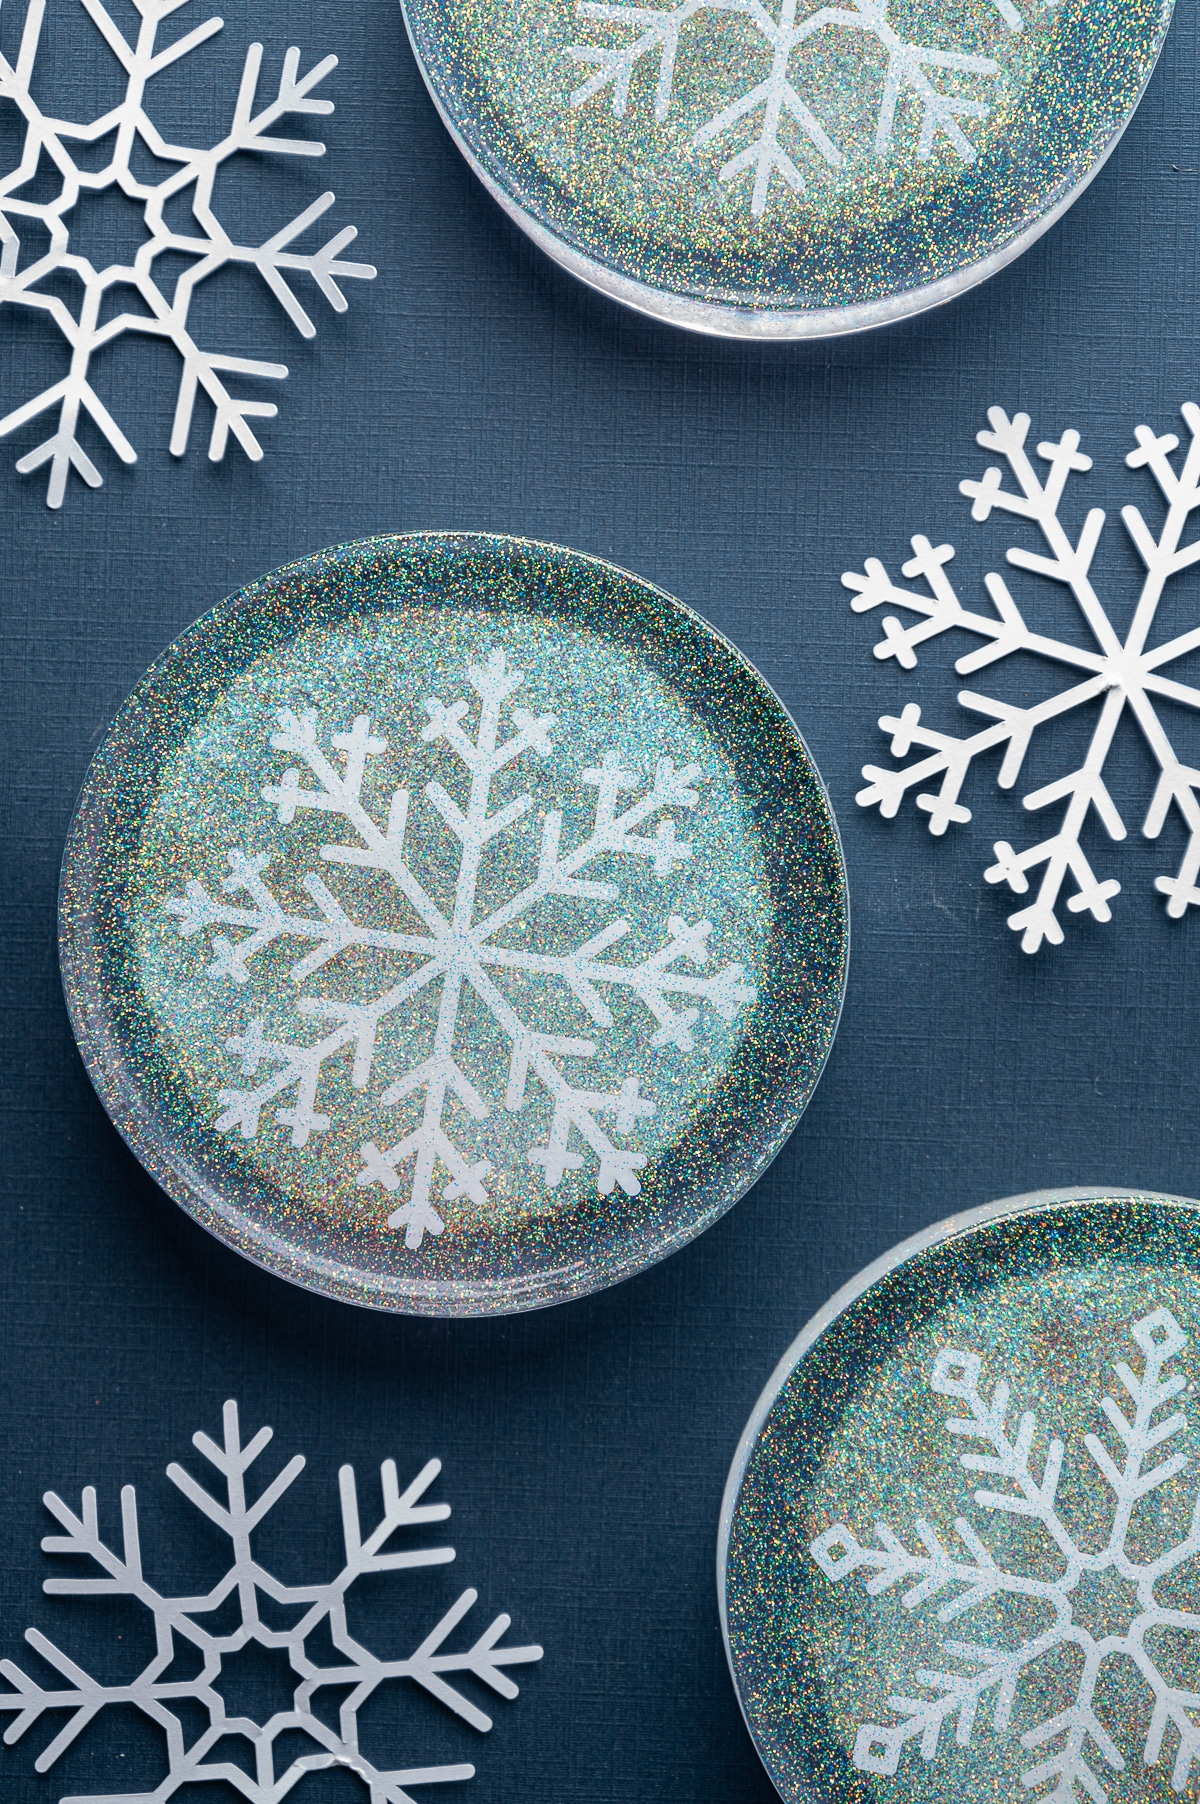 Round resin epoxy coasters with white snowflake cutouts and prismatic glitter on a dark blue background